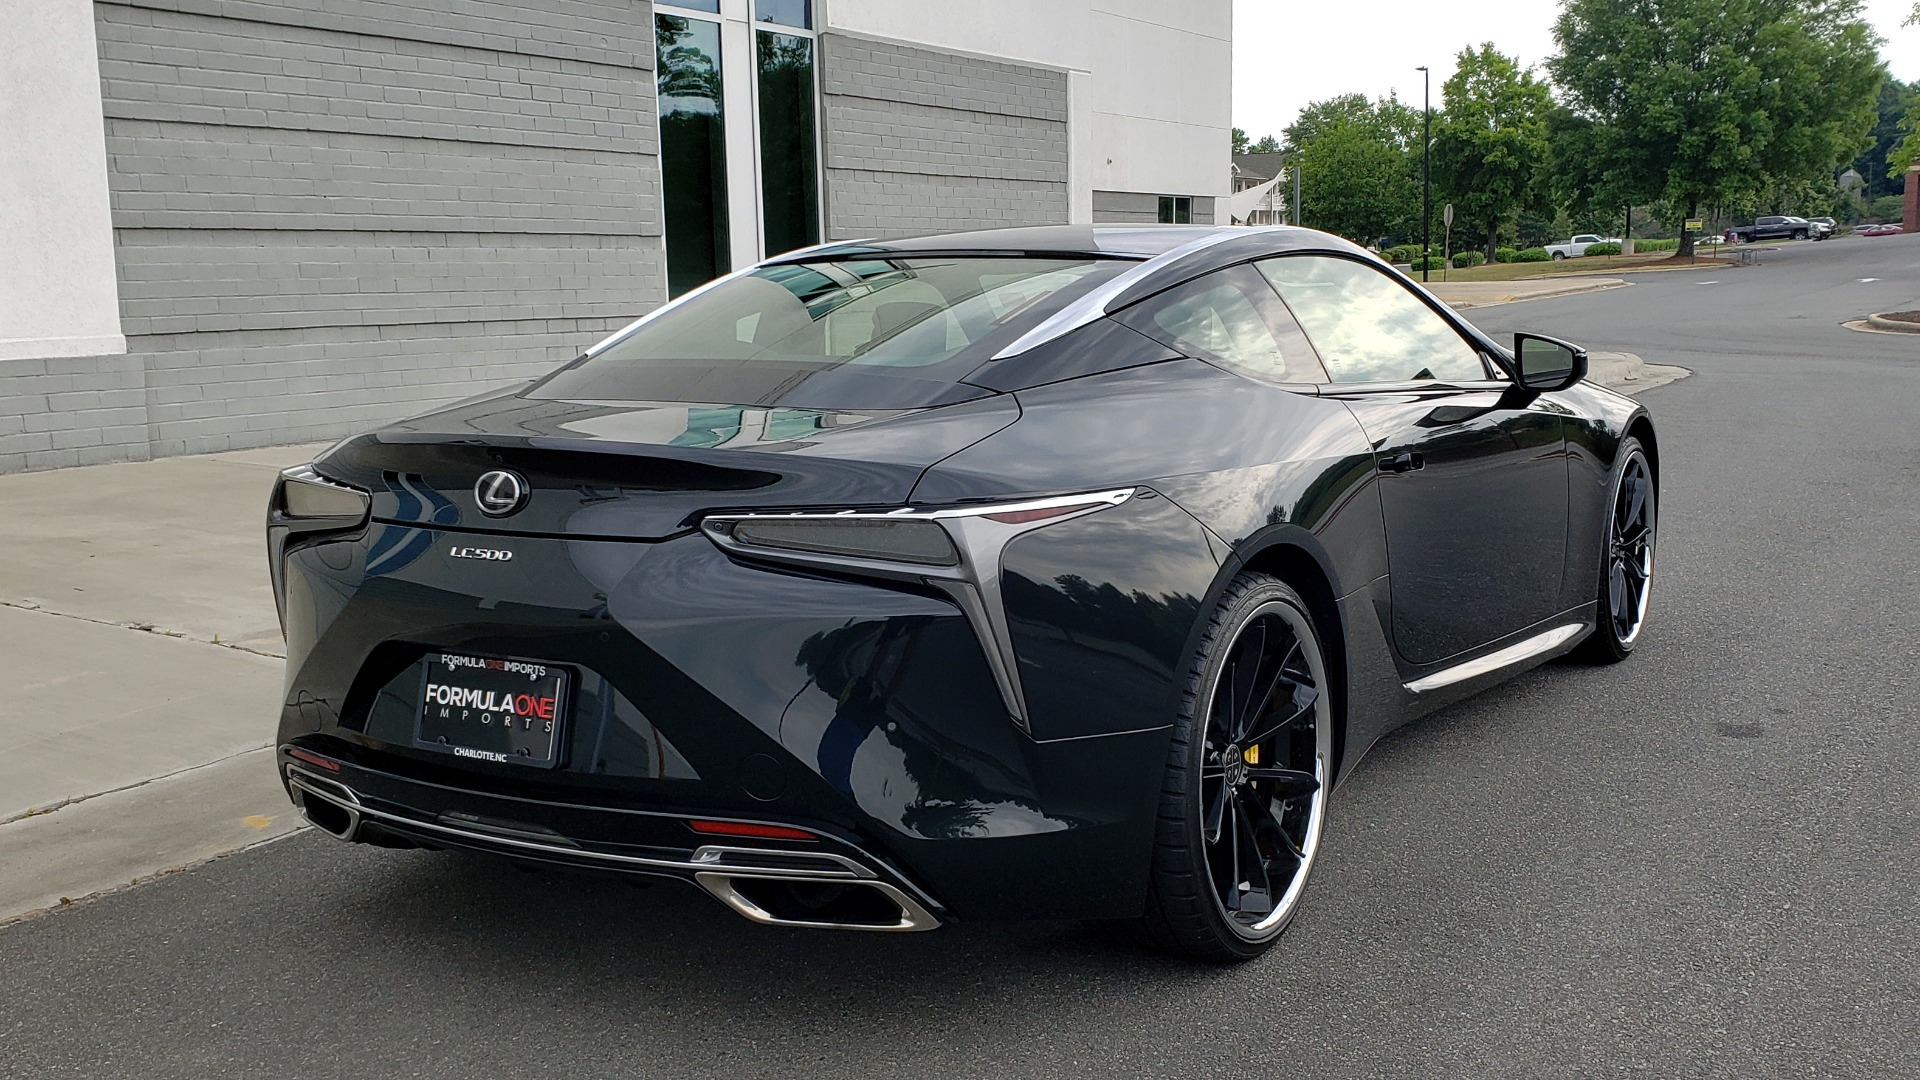 Used 2018 Lexus LC 500 COUPE / 5.0L V8 (471HP) / 10-SPD AUTO / HUD / SUNROOF / REARVIEW for sale Sold at Formula Imports in Charlotte NC 28227 2